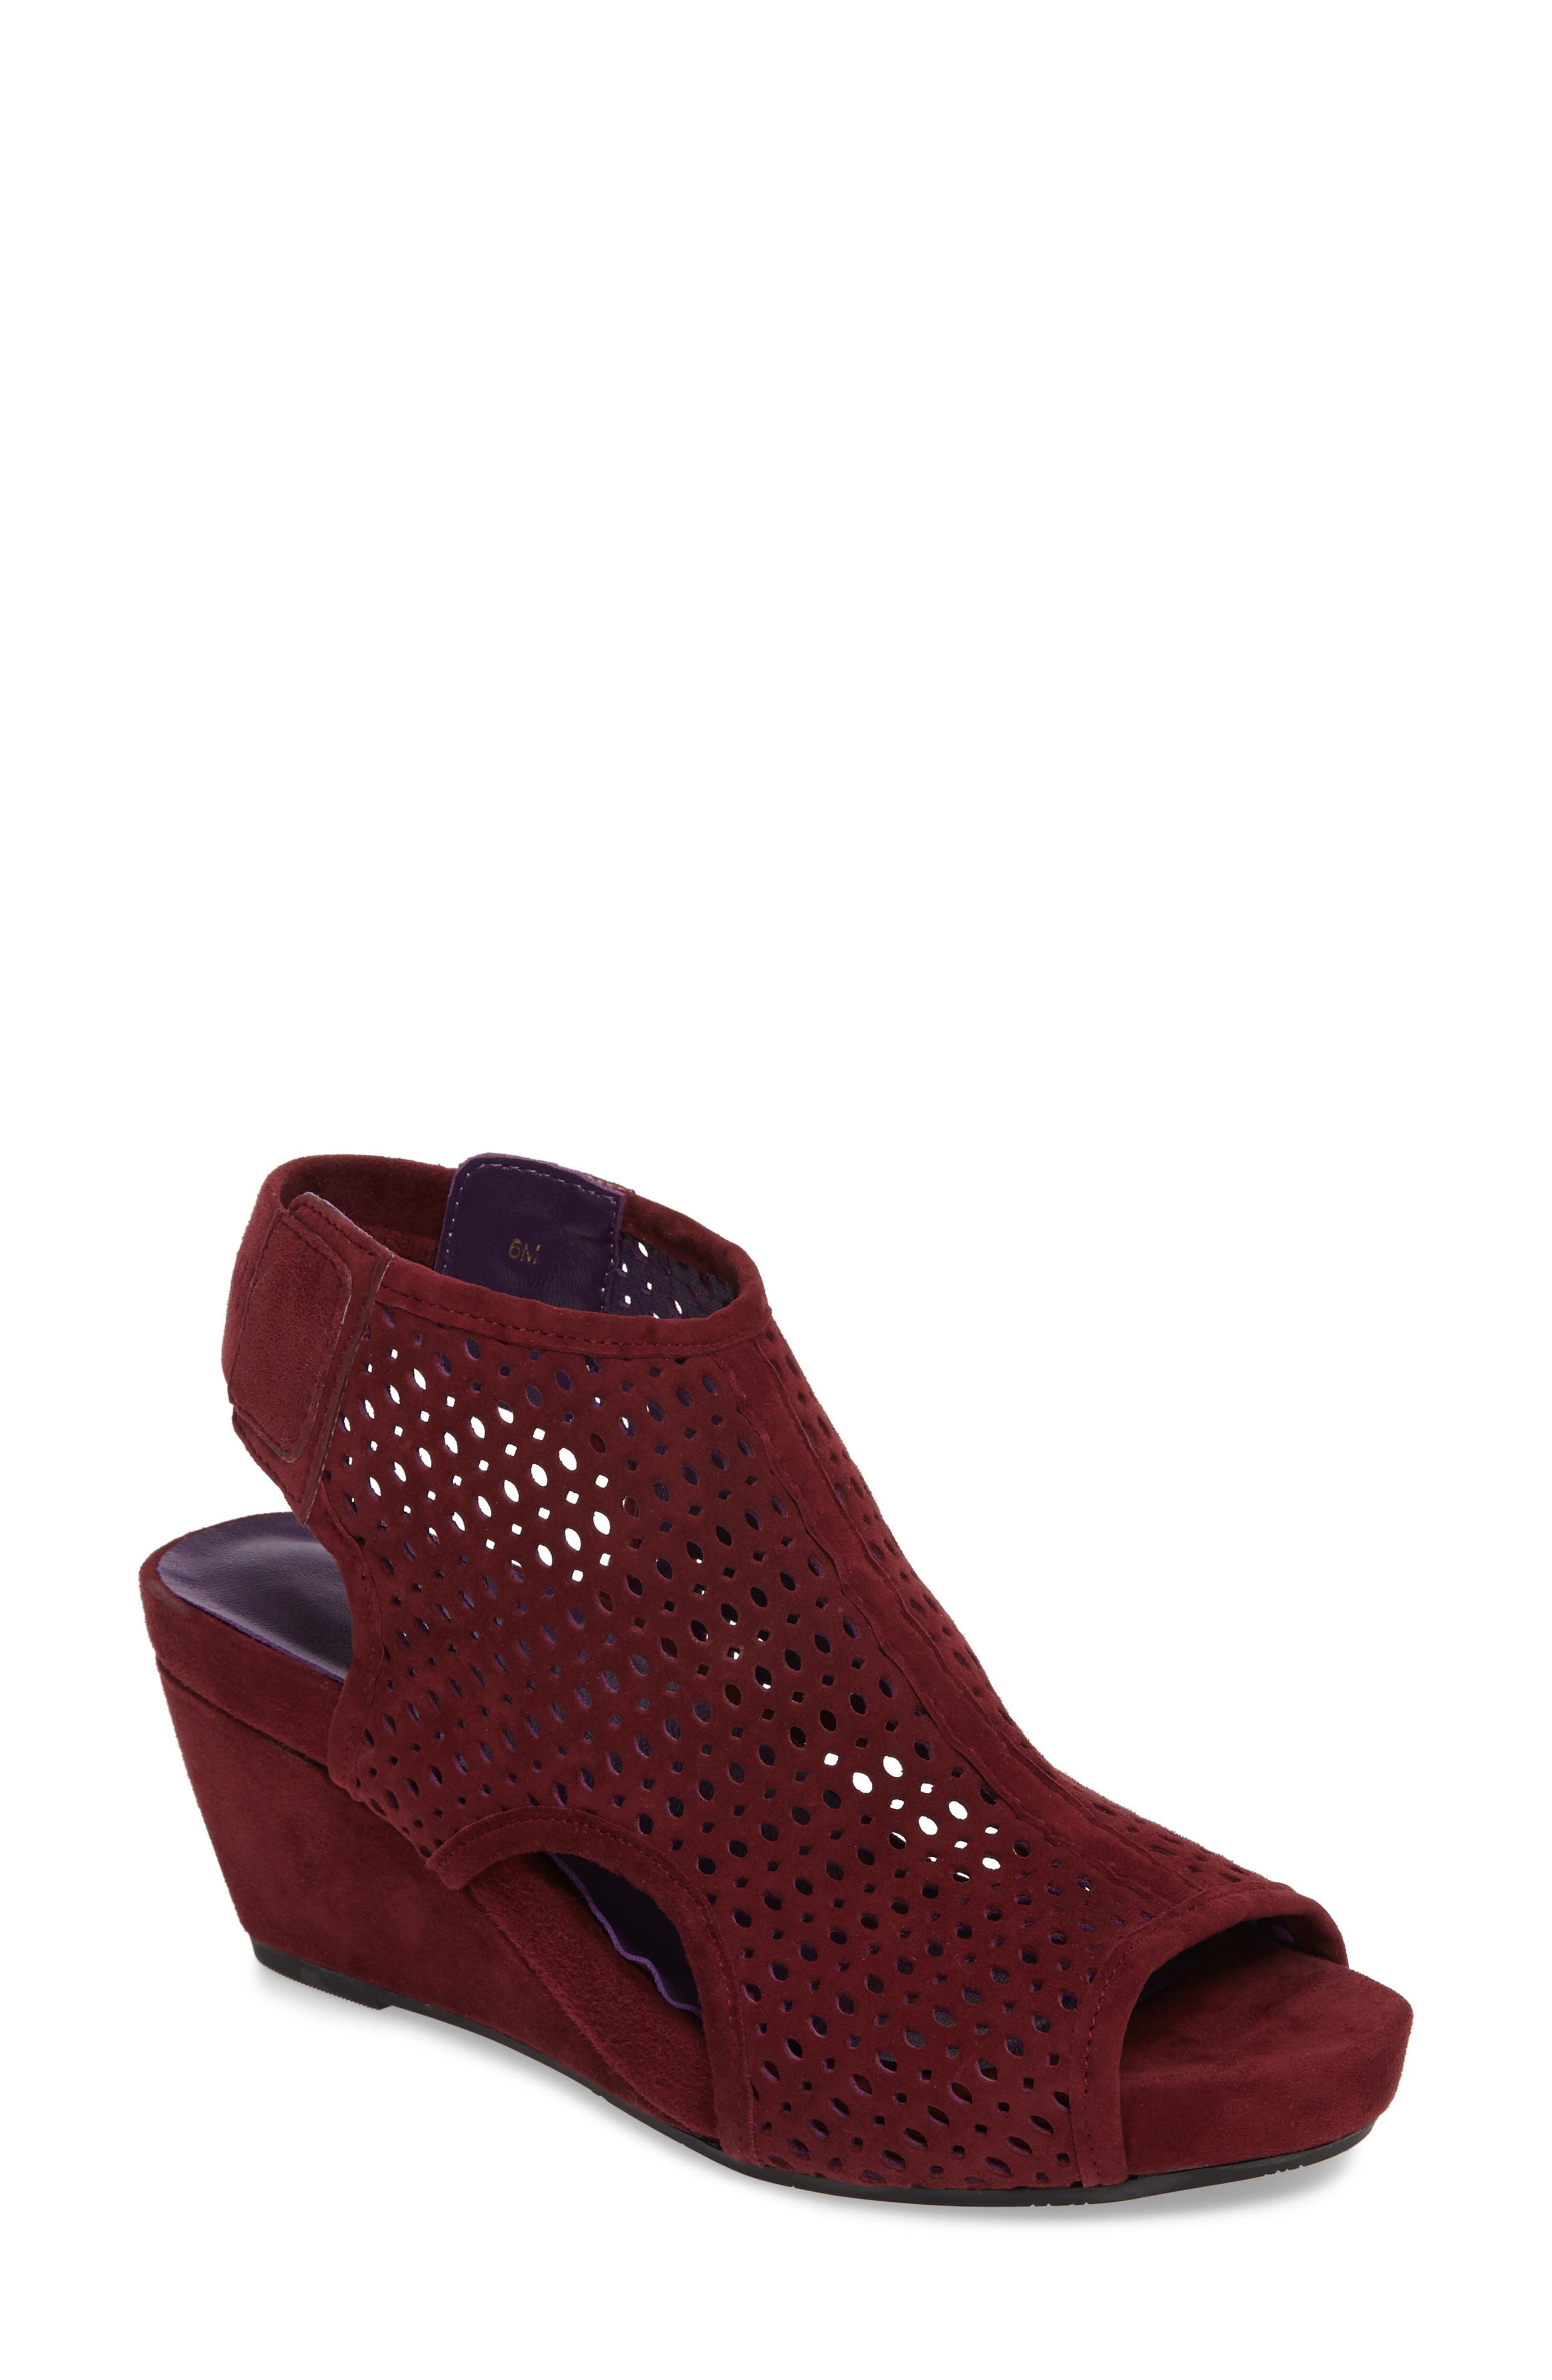 'Inez' Wedge Sandal,                         Main,                         color, Red Suede